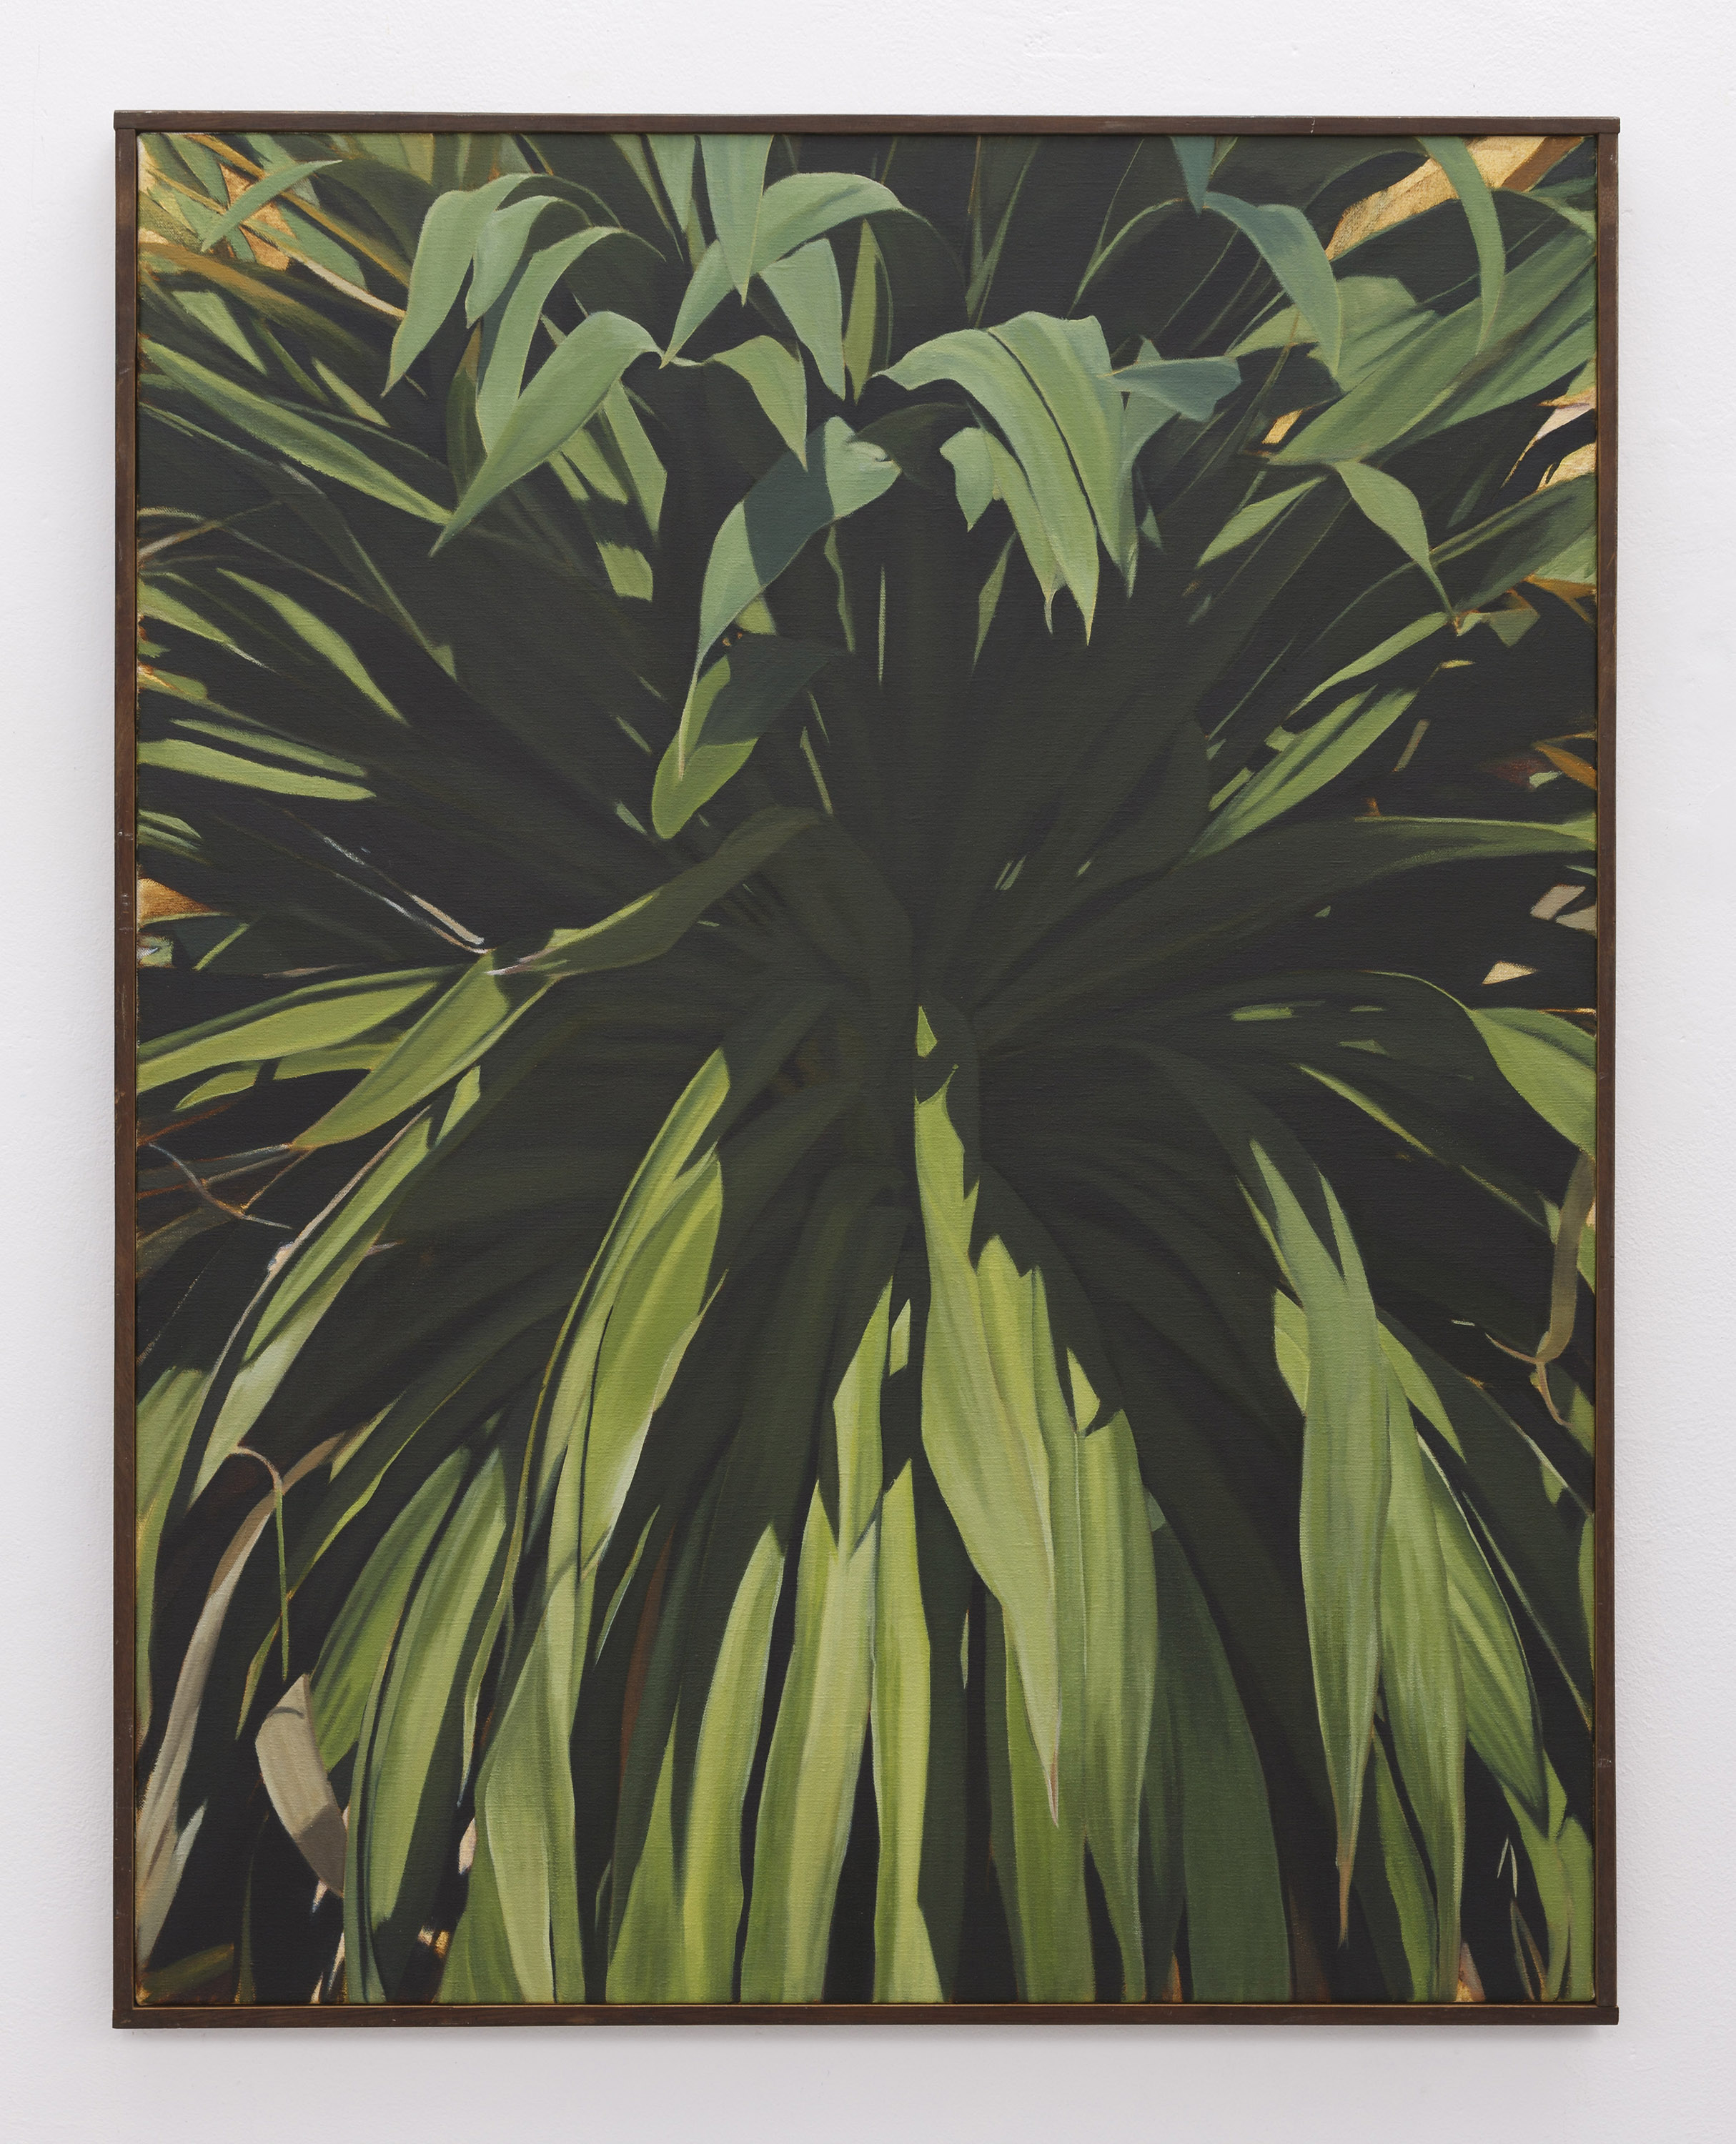 Cordyline | 2018 | oil on linen | 90 x 70 cm | Available